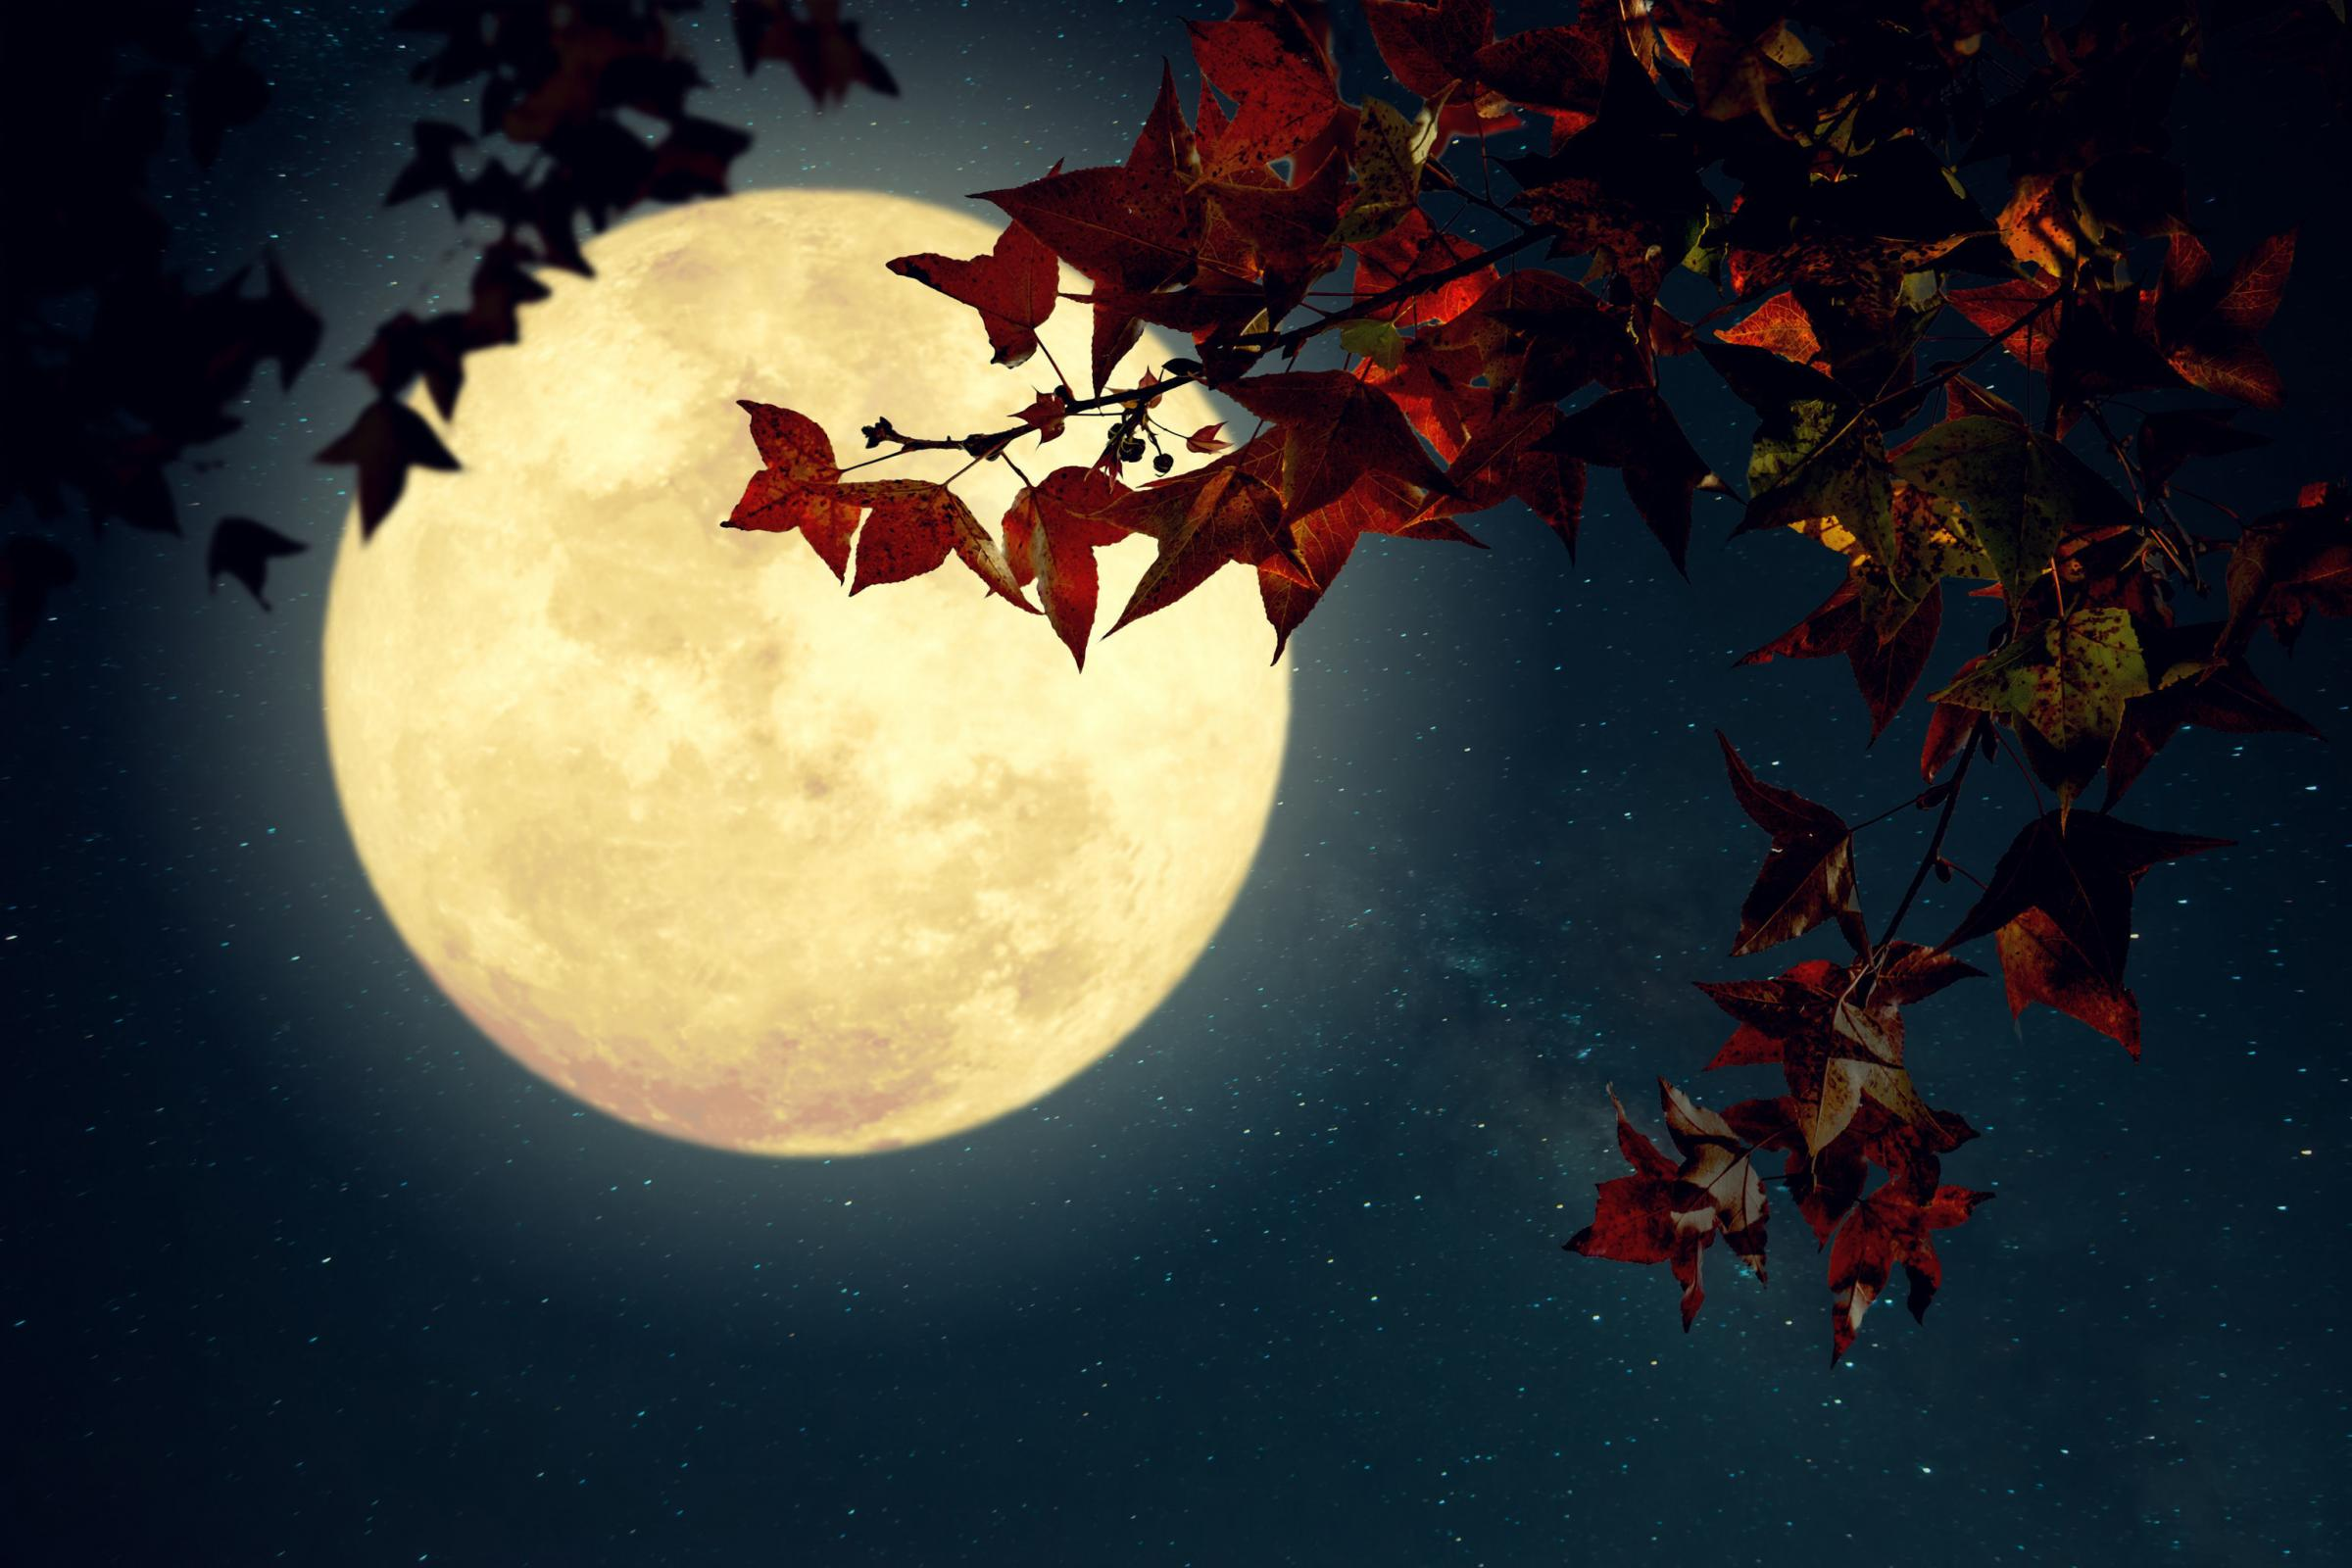 Lunar gardening: How to harness the power of the moon in your garden